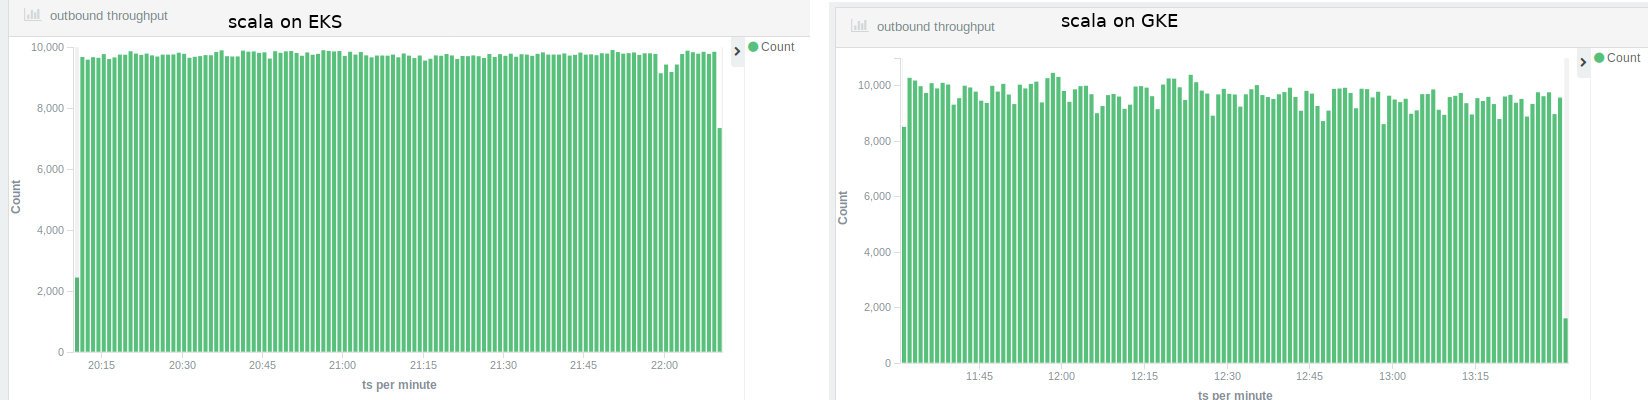 Scala throughput EKS vs GKE